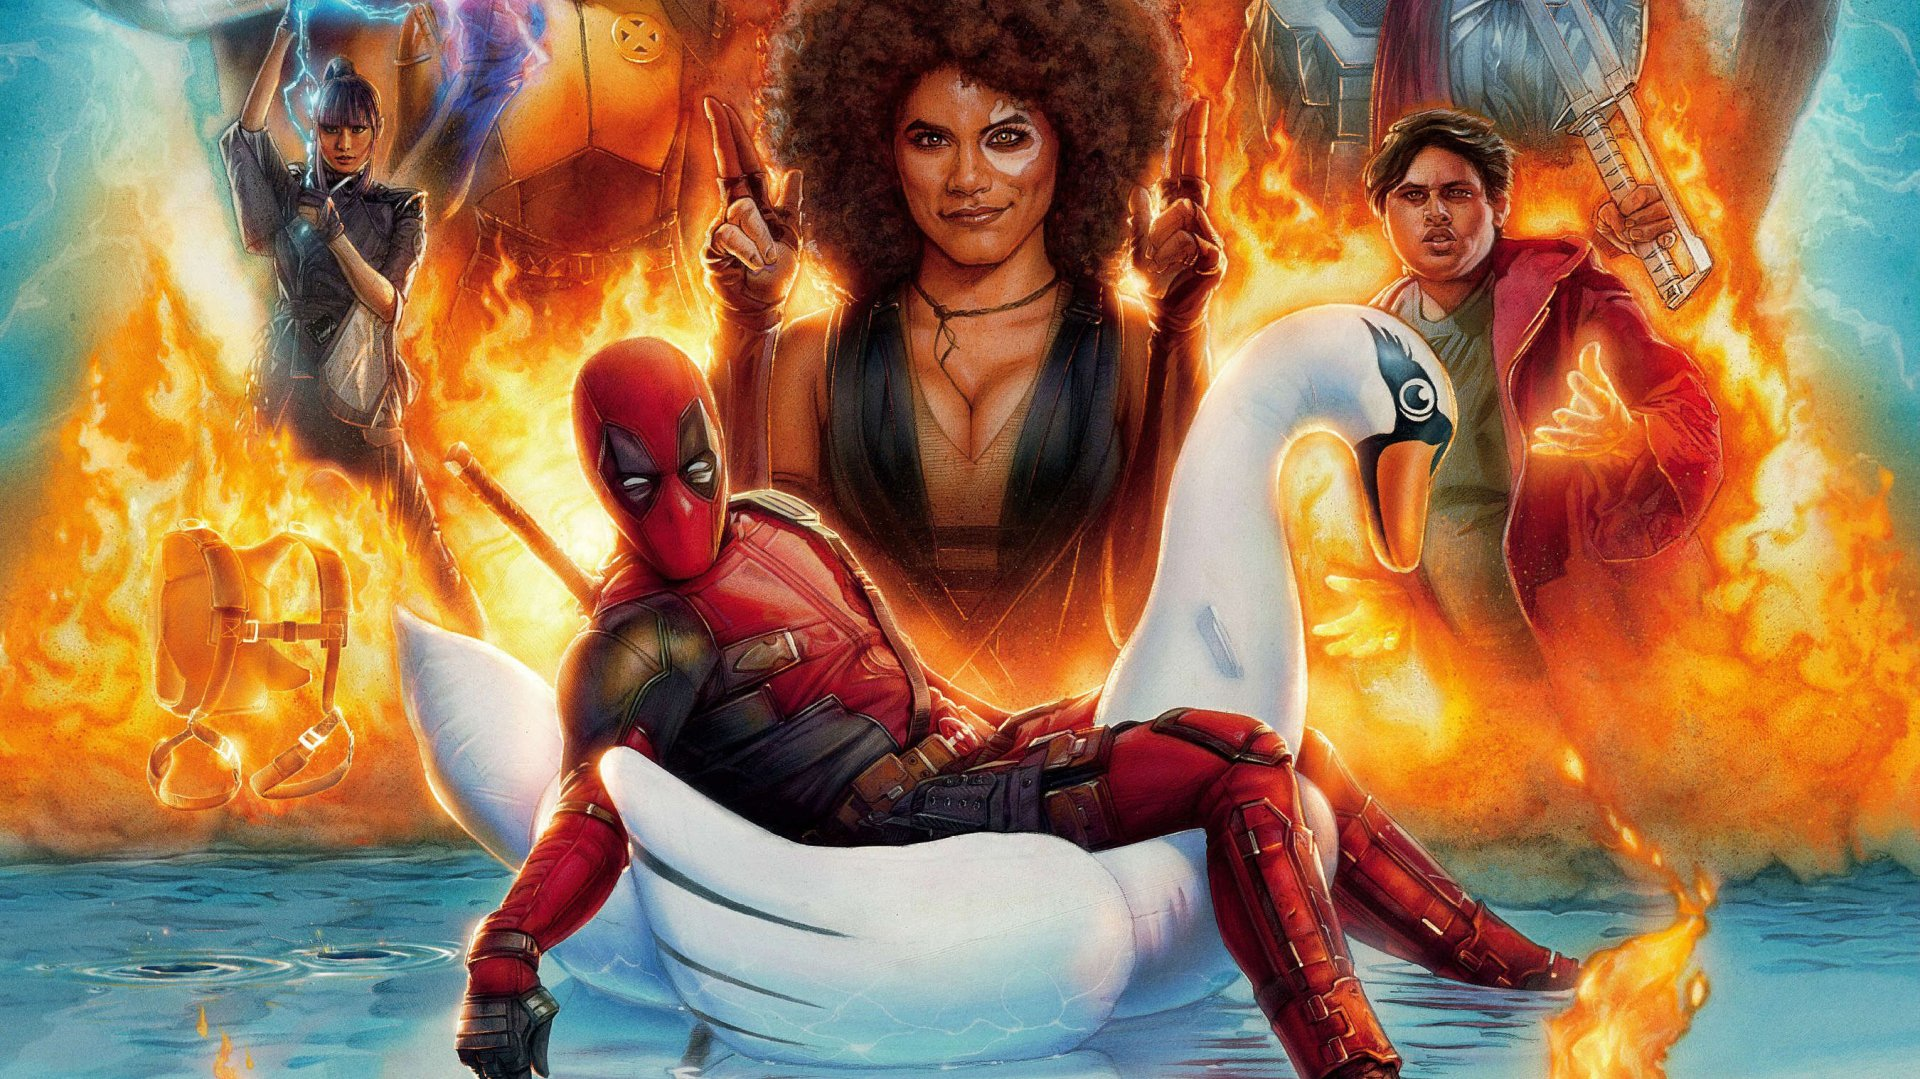 Fondos En Hd Para Pc: DeadPool 2, Fondos De Pantalla De Deadpool 2, Wallpapers